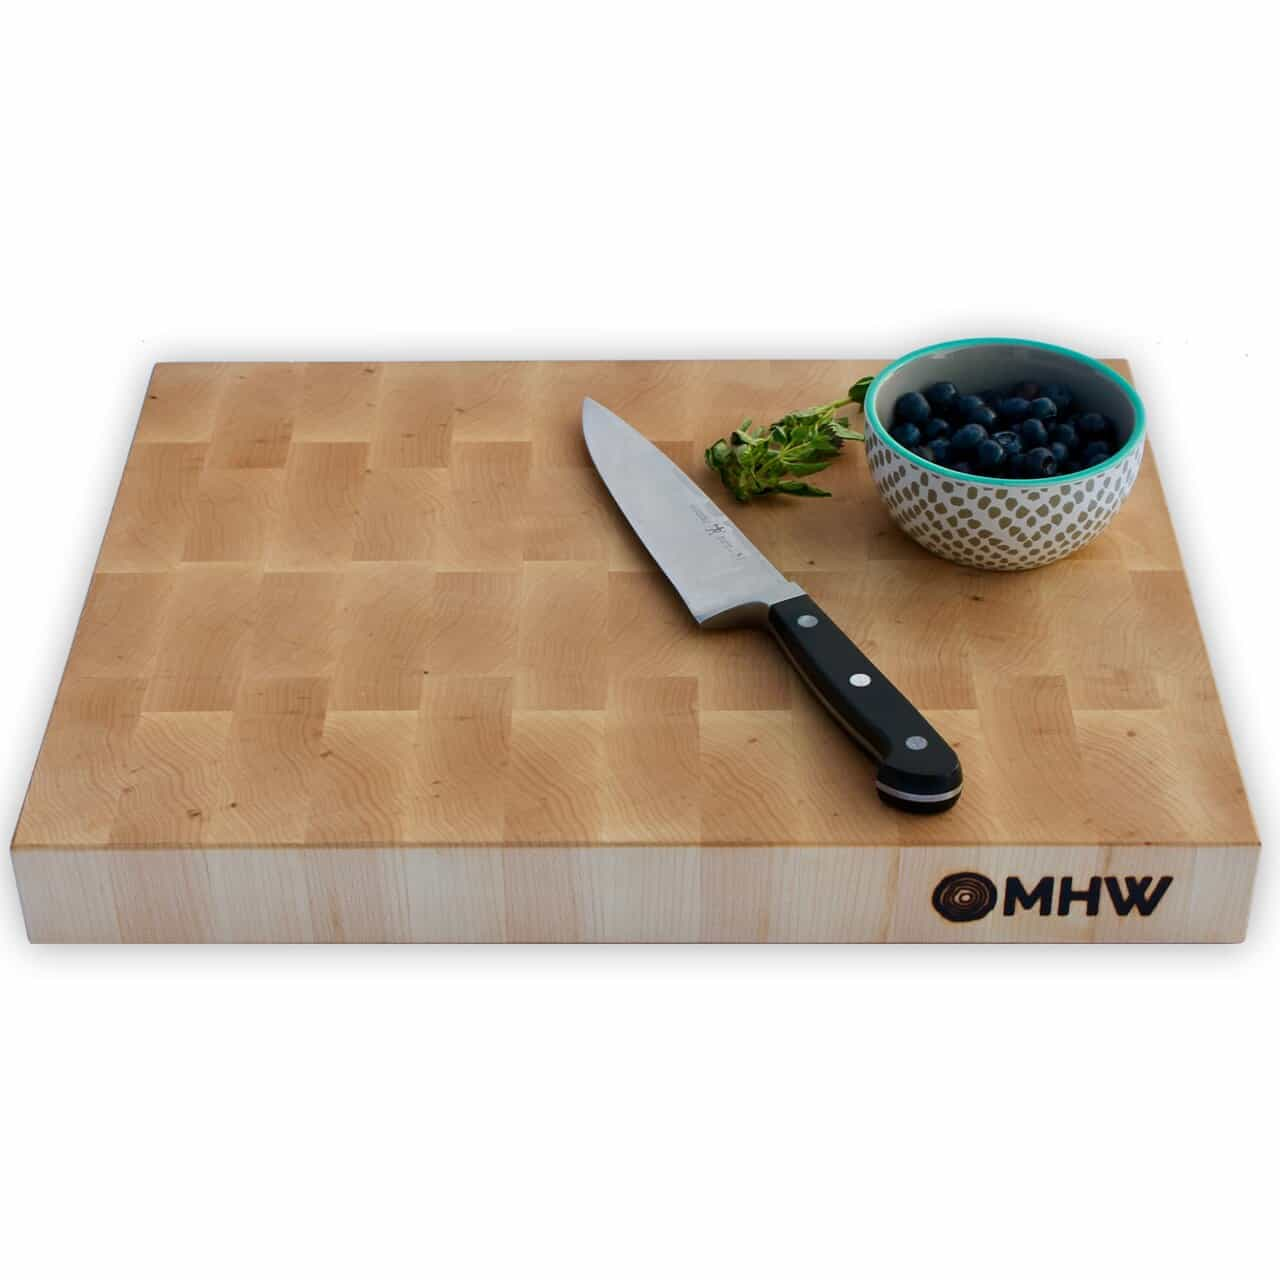 14x24 Maple End Grain Wood Butcher Block - wFREE Board Butter!